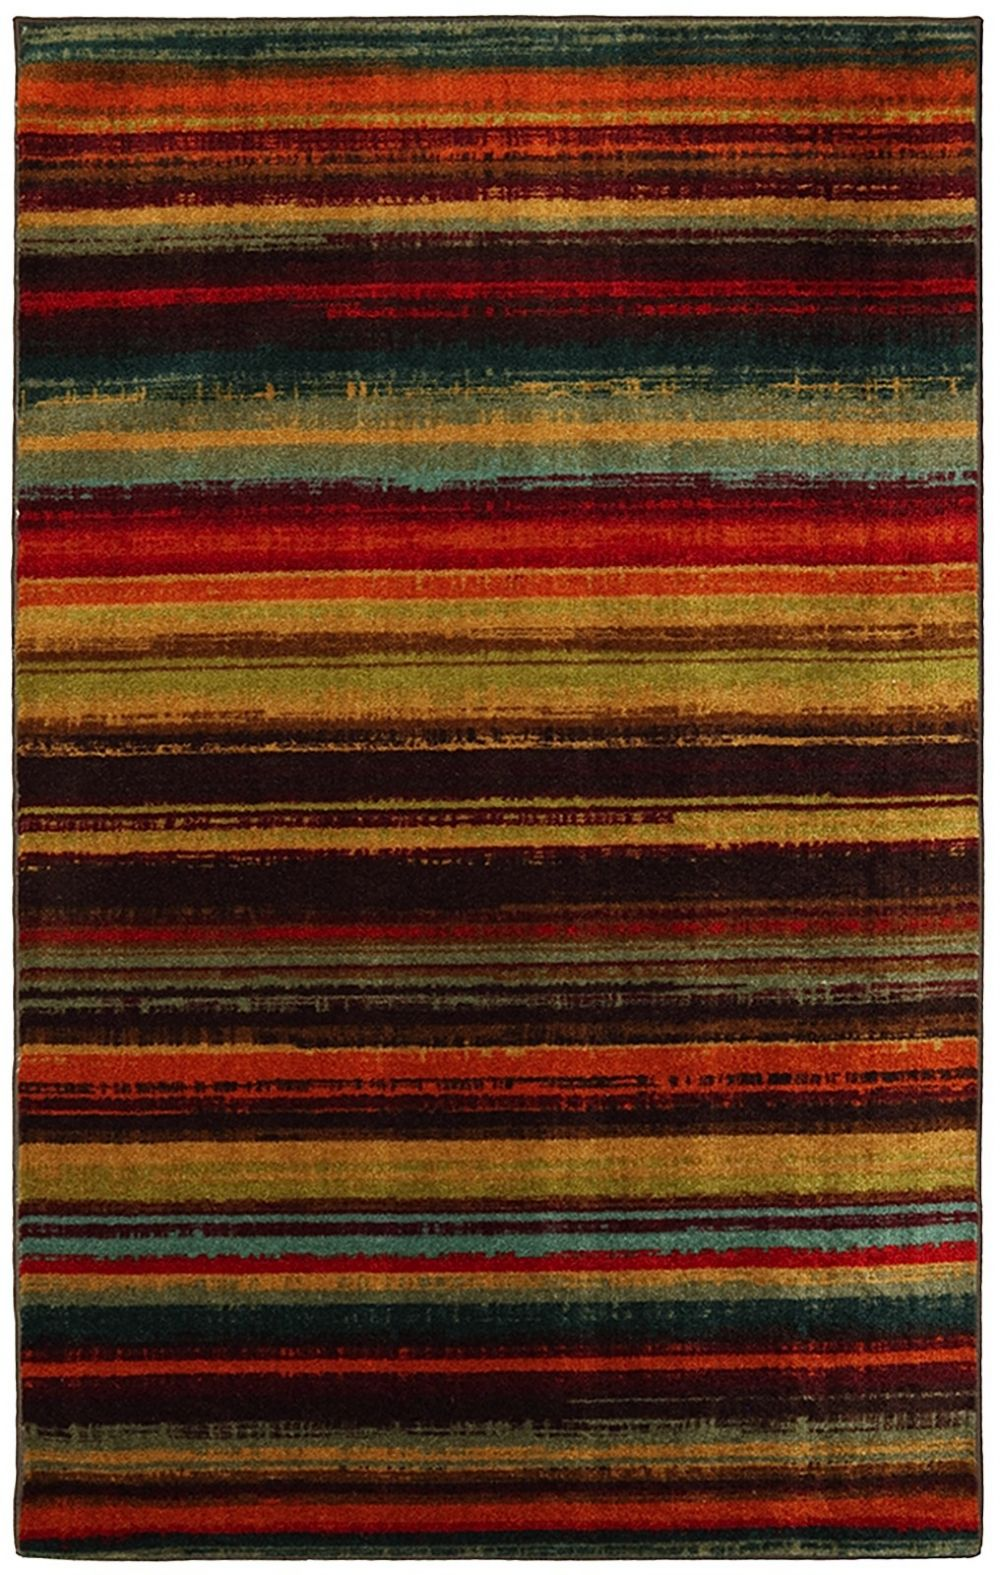 mohawk boho stripe solid/striped area rug collection